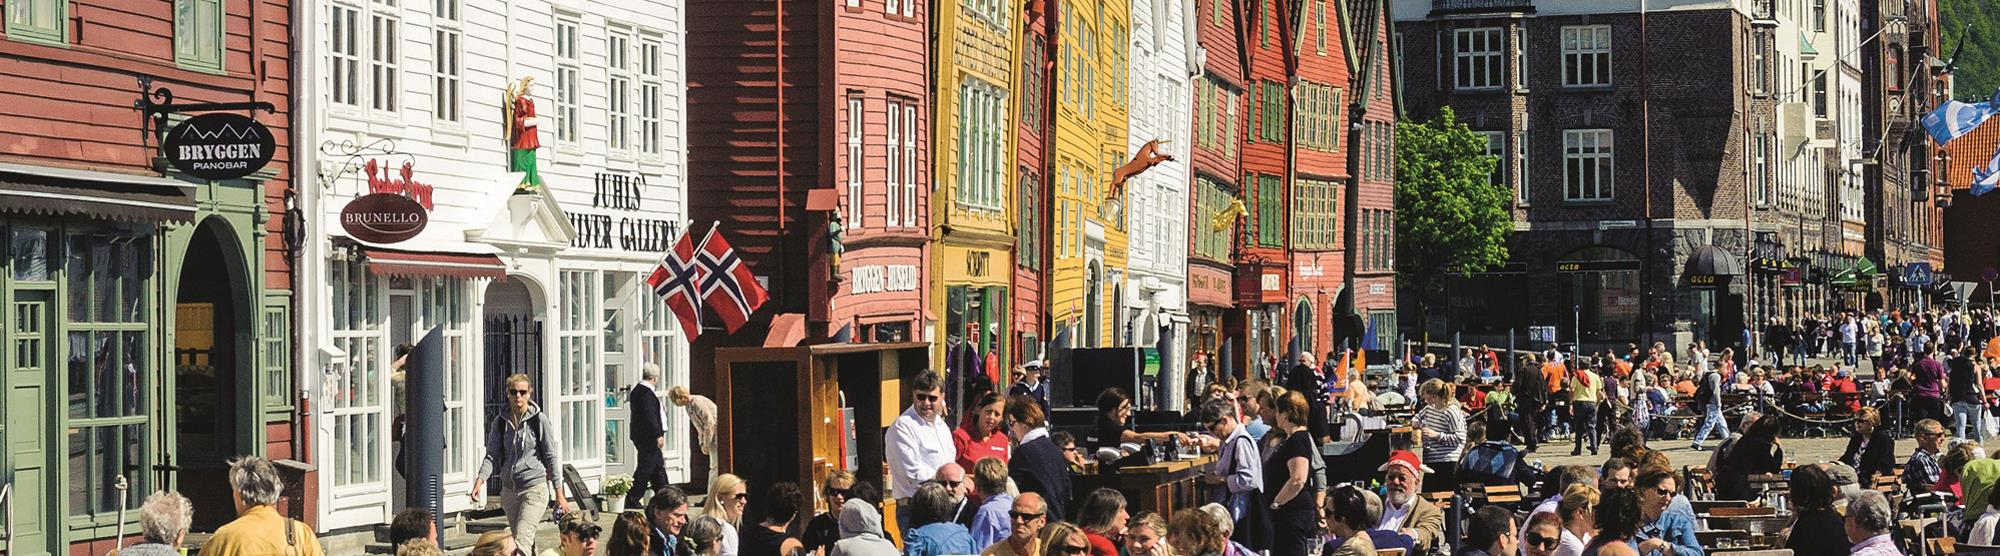 At Bryggen you will find several restaurants offering local and internationsl cuisine